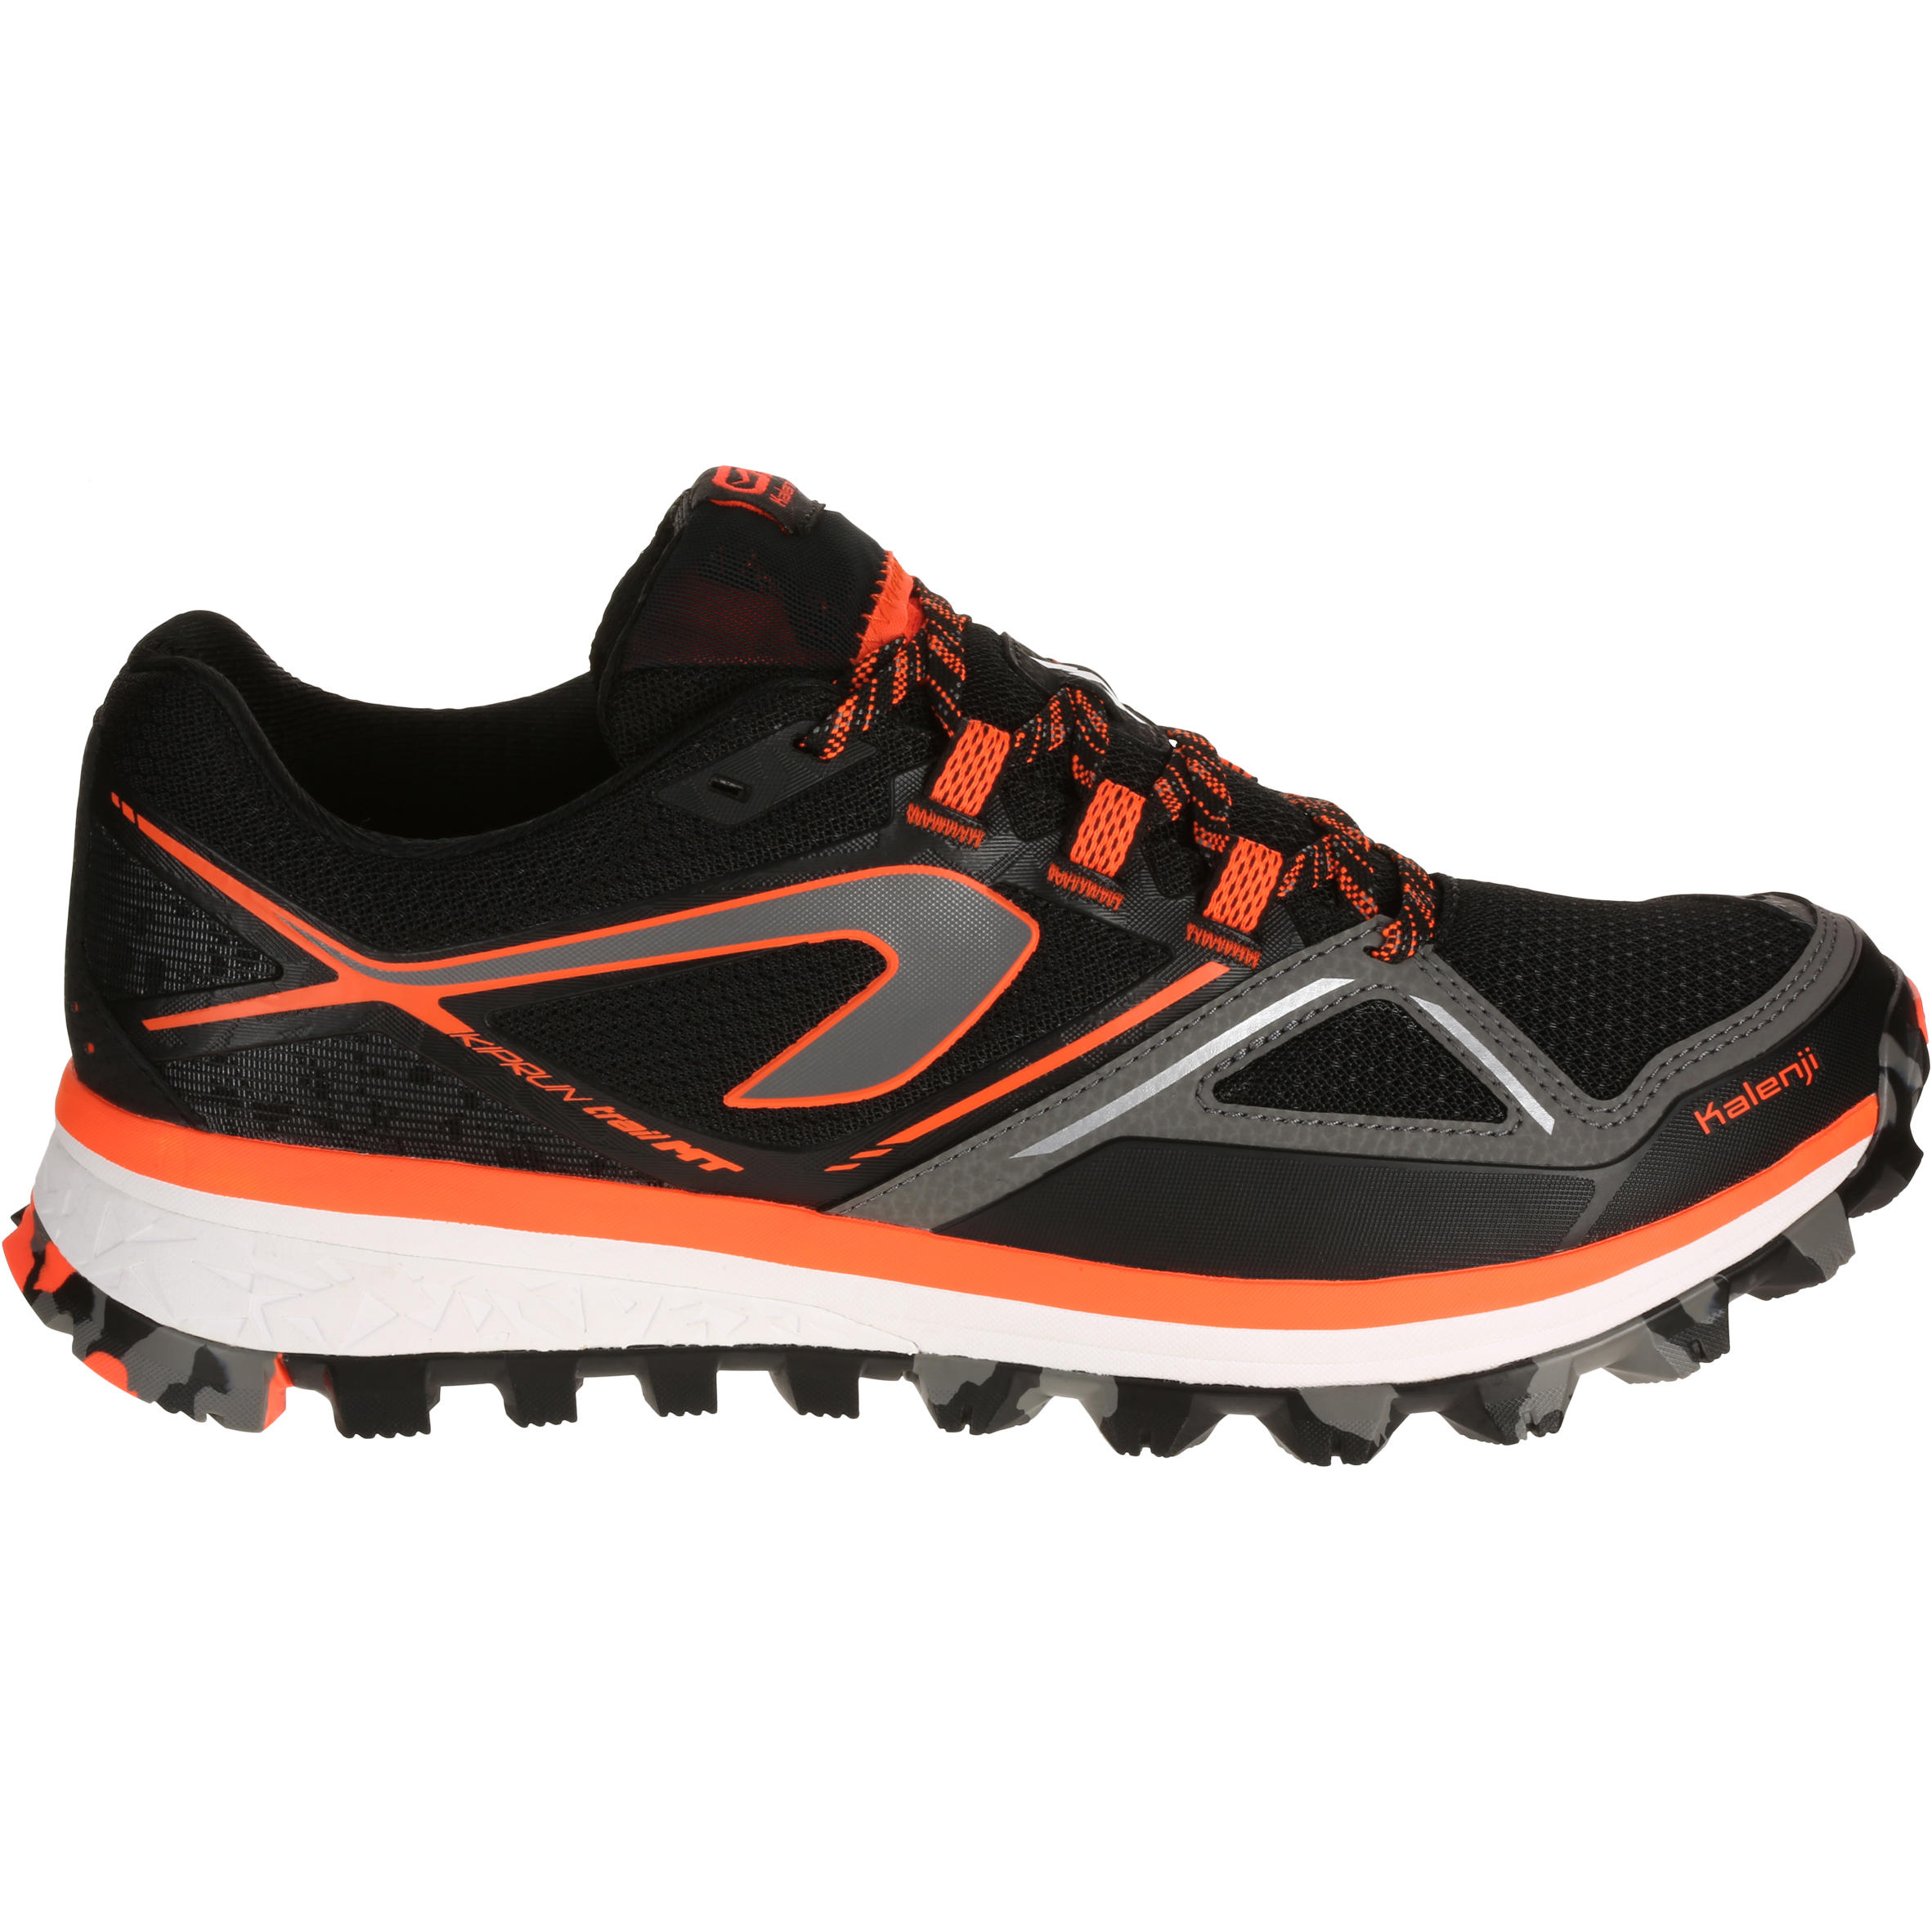 KIPRUN TRAIL MT MEN'S TRAIL RUNNING SHOES - BLACK ORANGE